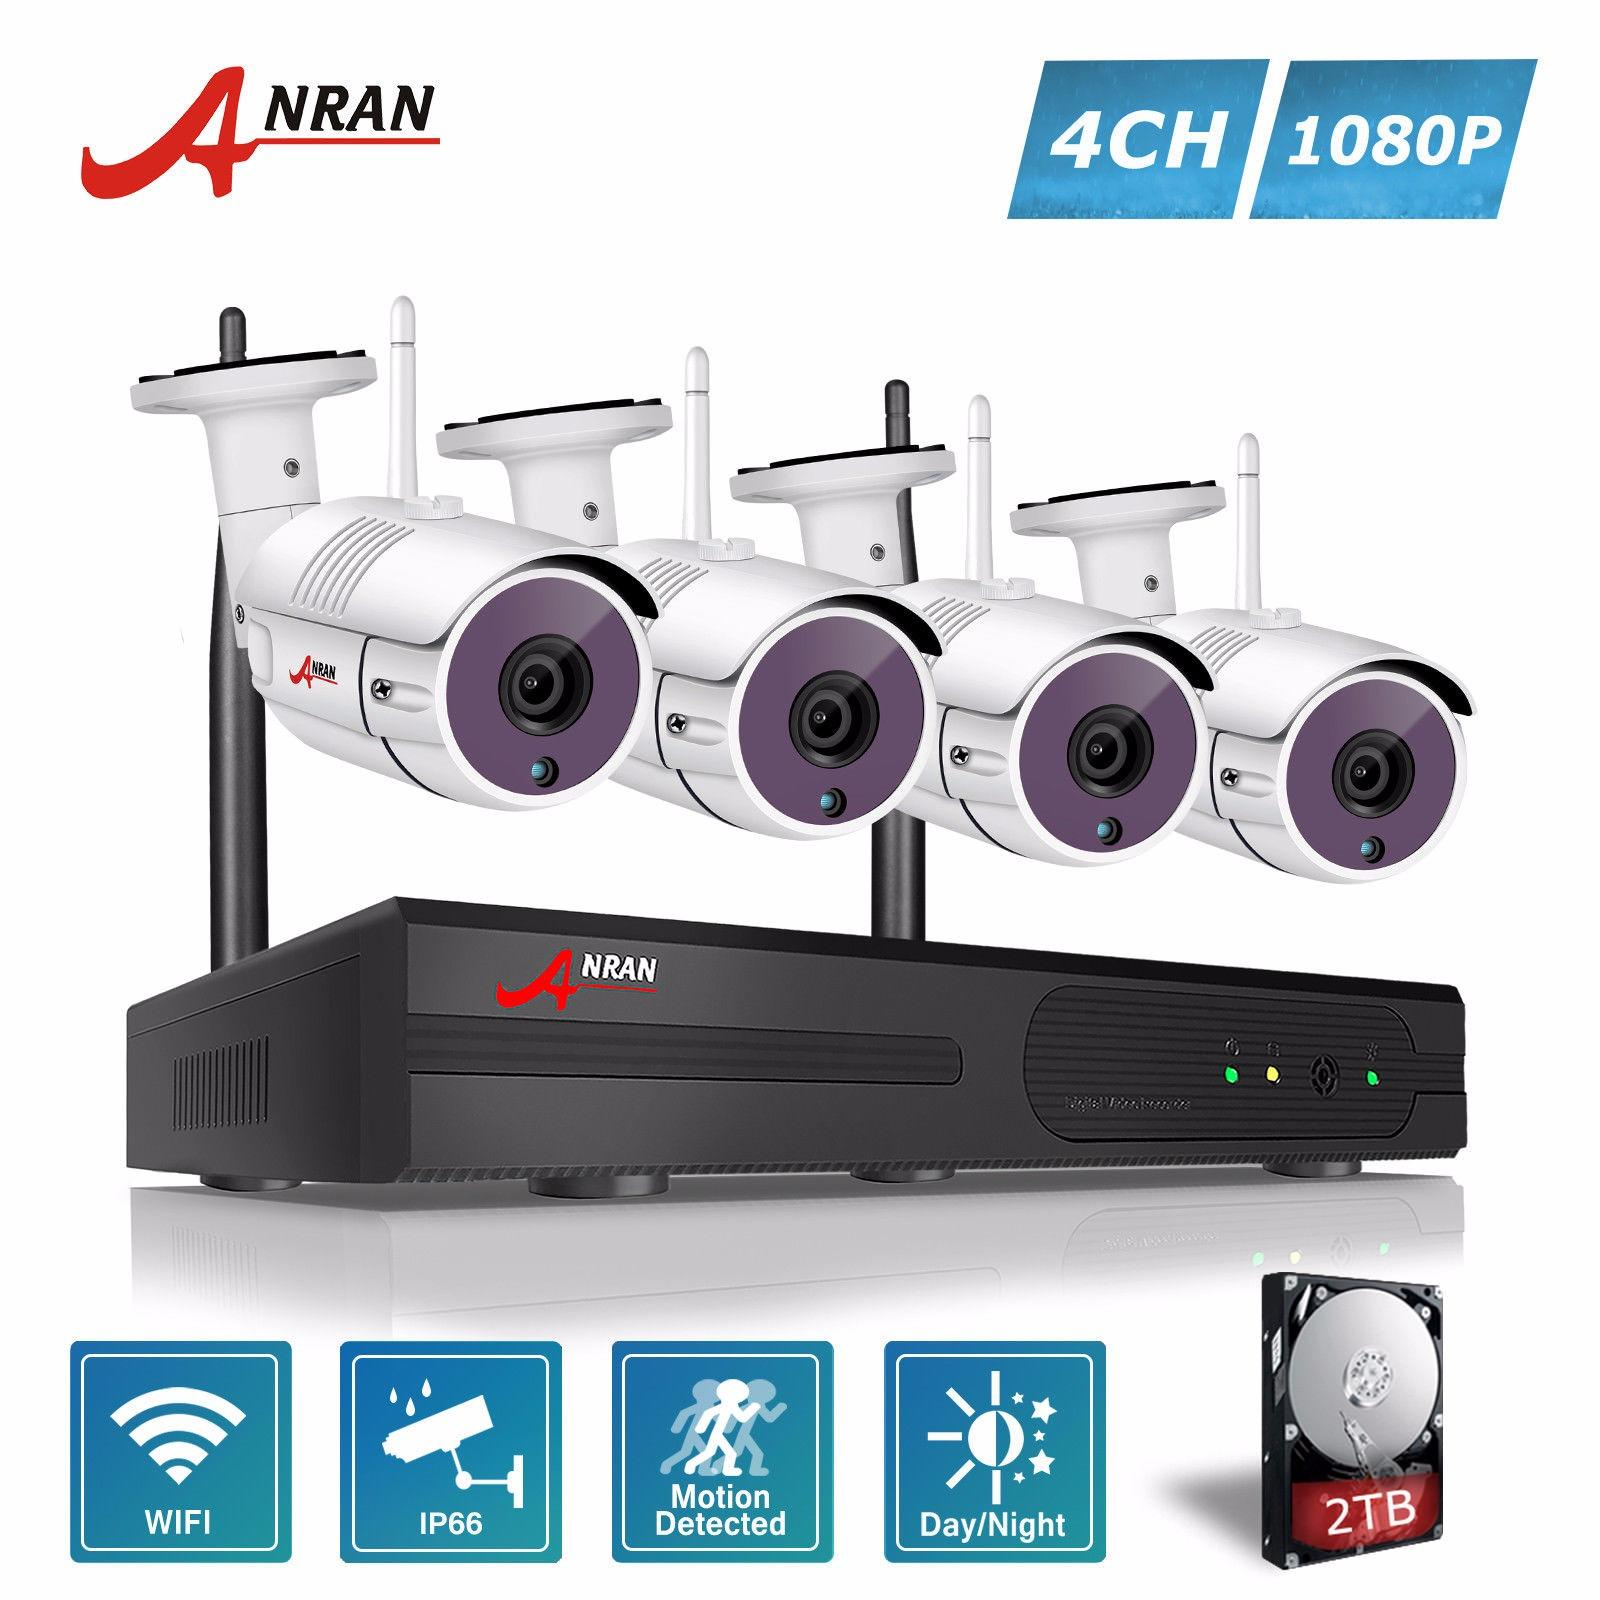 Sale Anran 4Ch Wireless Nvr Cctv Kit P2P 1080P Hd Outdoor Wifi Mini Ip Camera 36Ir Security Surveillance System Anran Branded